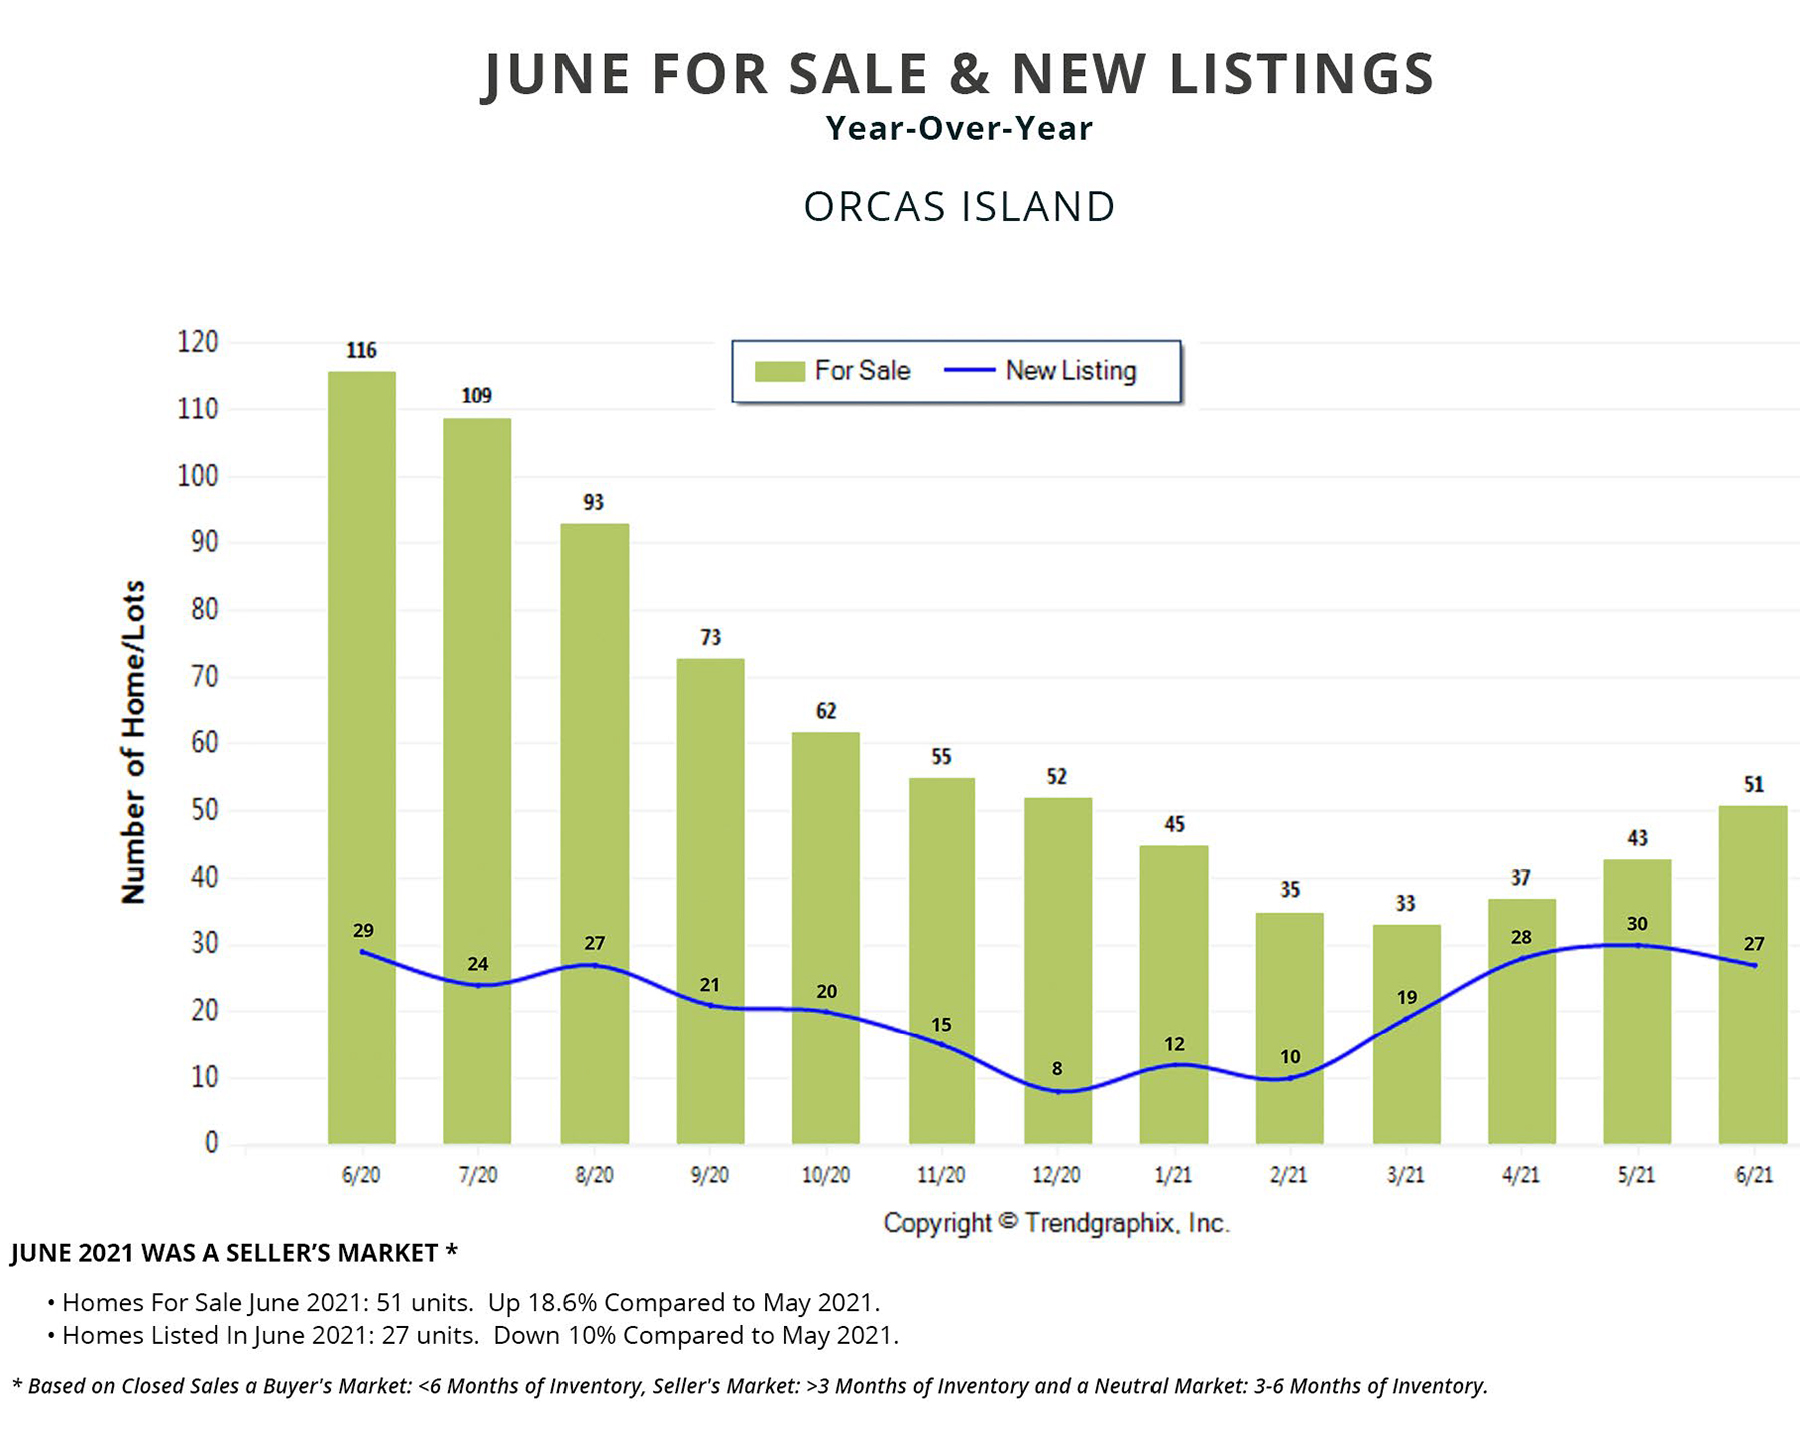 orcas island homes vacant land acreage condos for sale new listings year over year trendgraphix windermere real estate realty gudgell group san juan islands